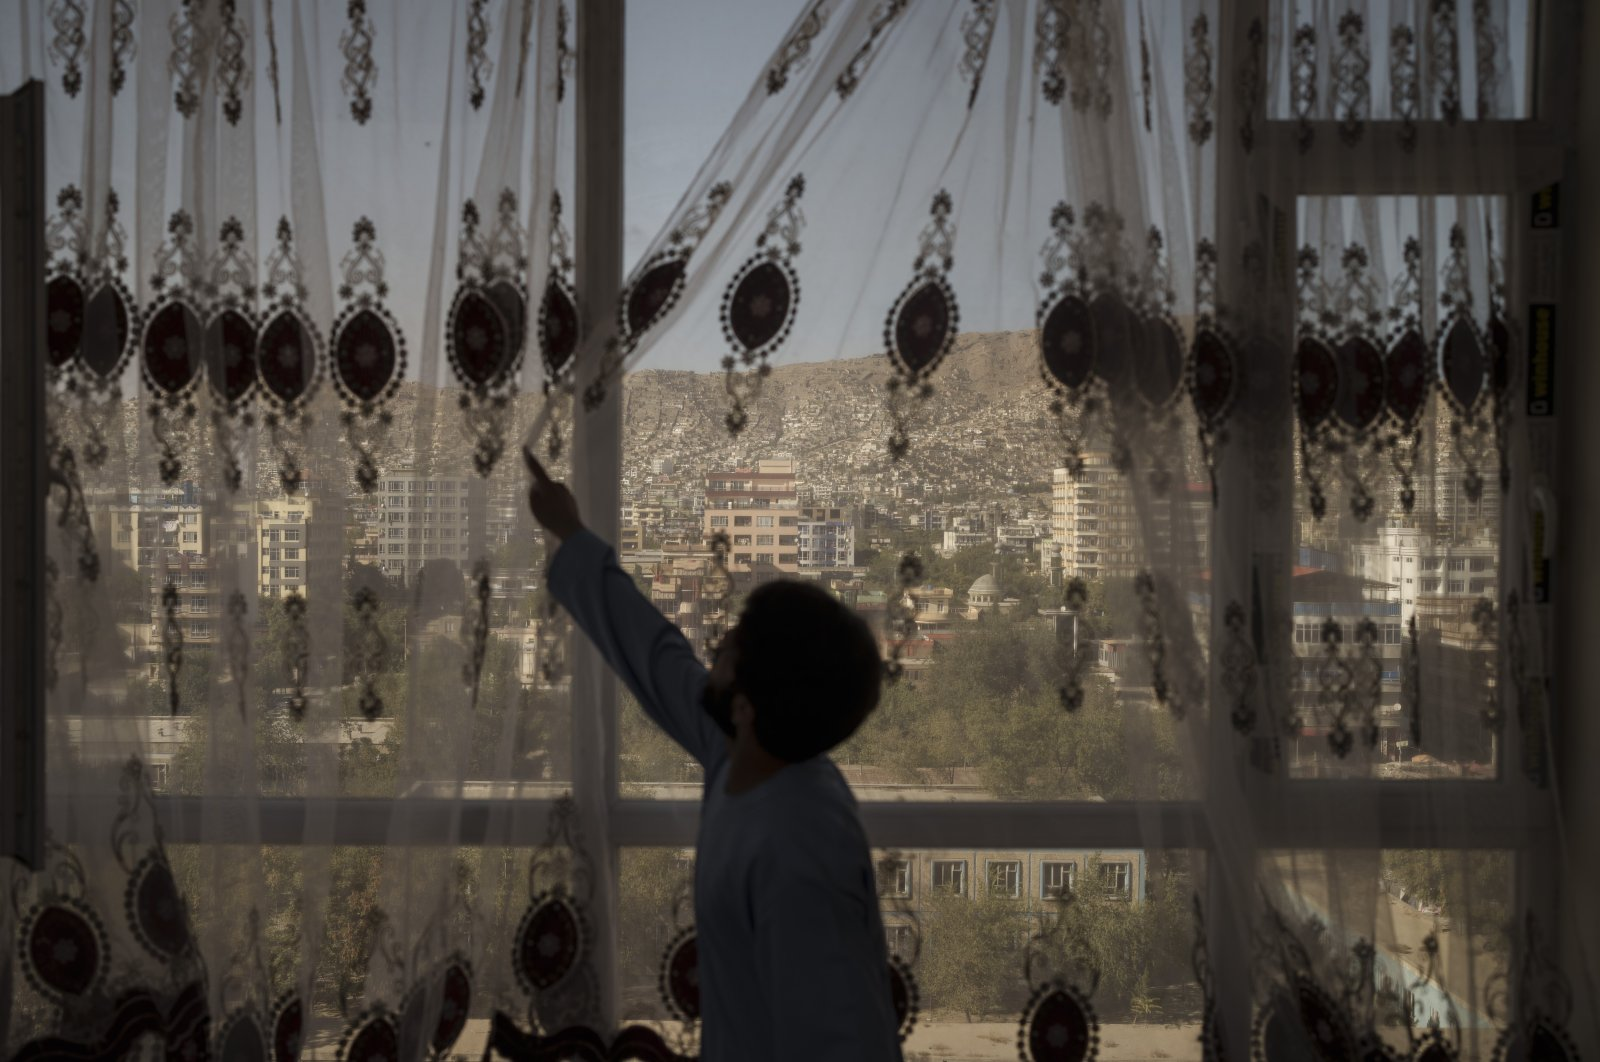 Mohammed Zakir closes the curtains of his family home, overlooking Kabul, Afghanistan, Sept. 17, 2021. (AP Photo)